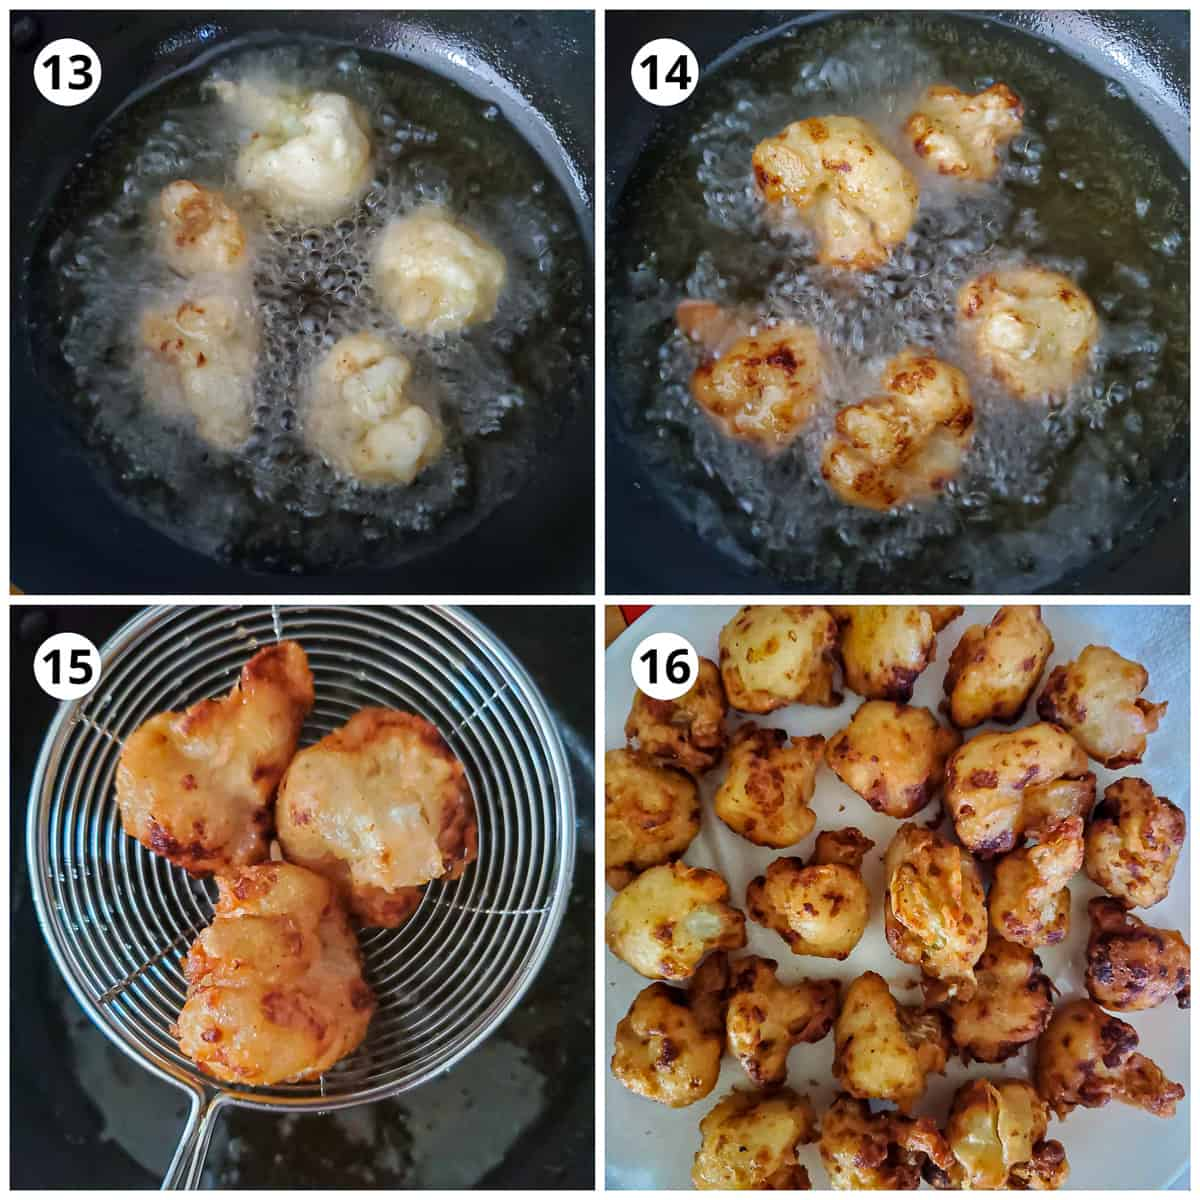 frying the cauliflowers second time to make them golden and crispy.